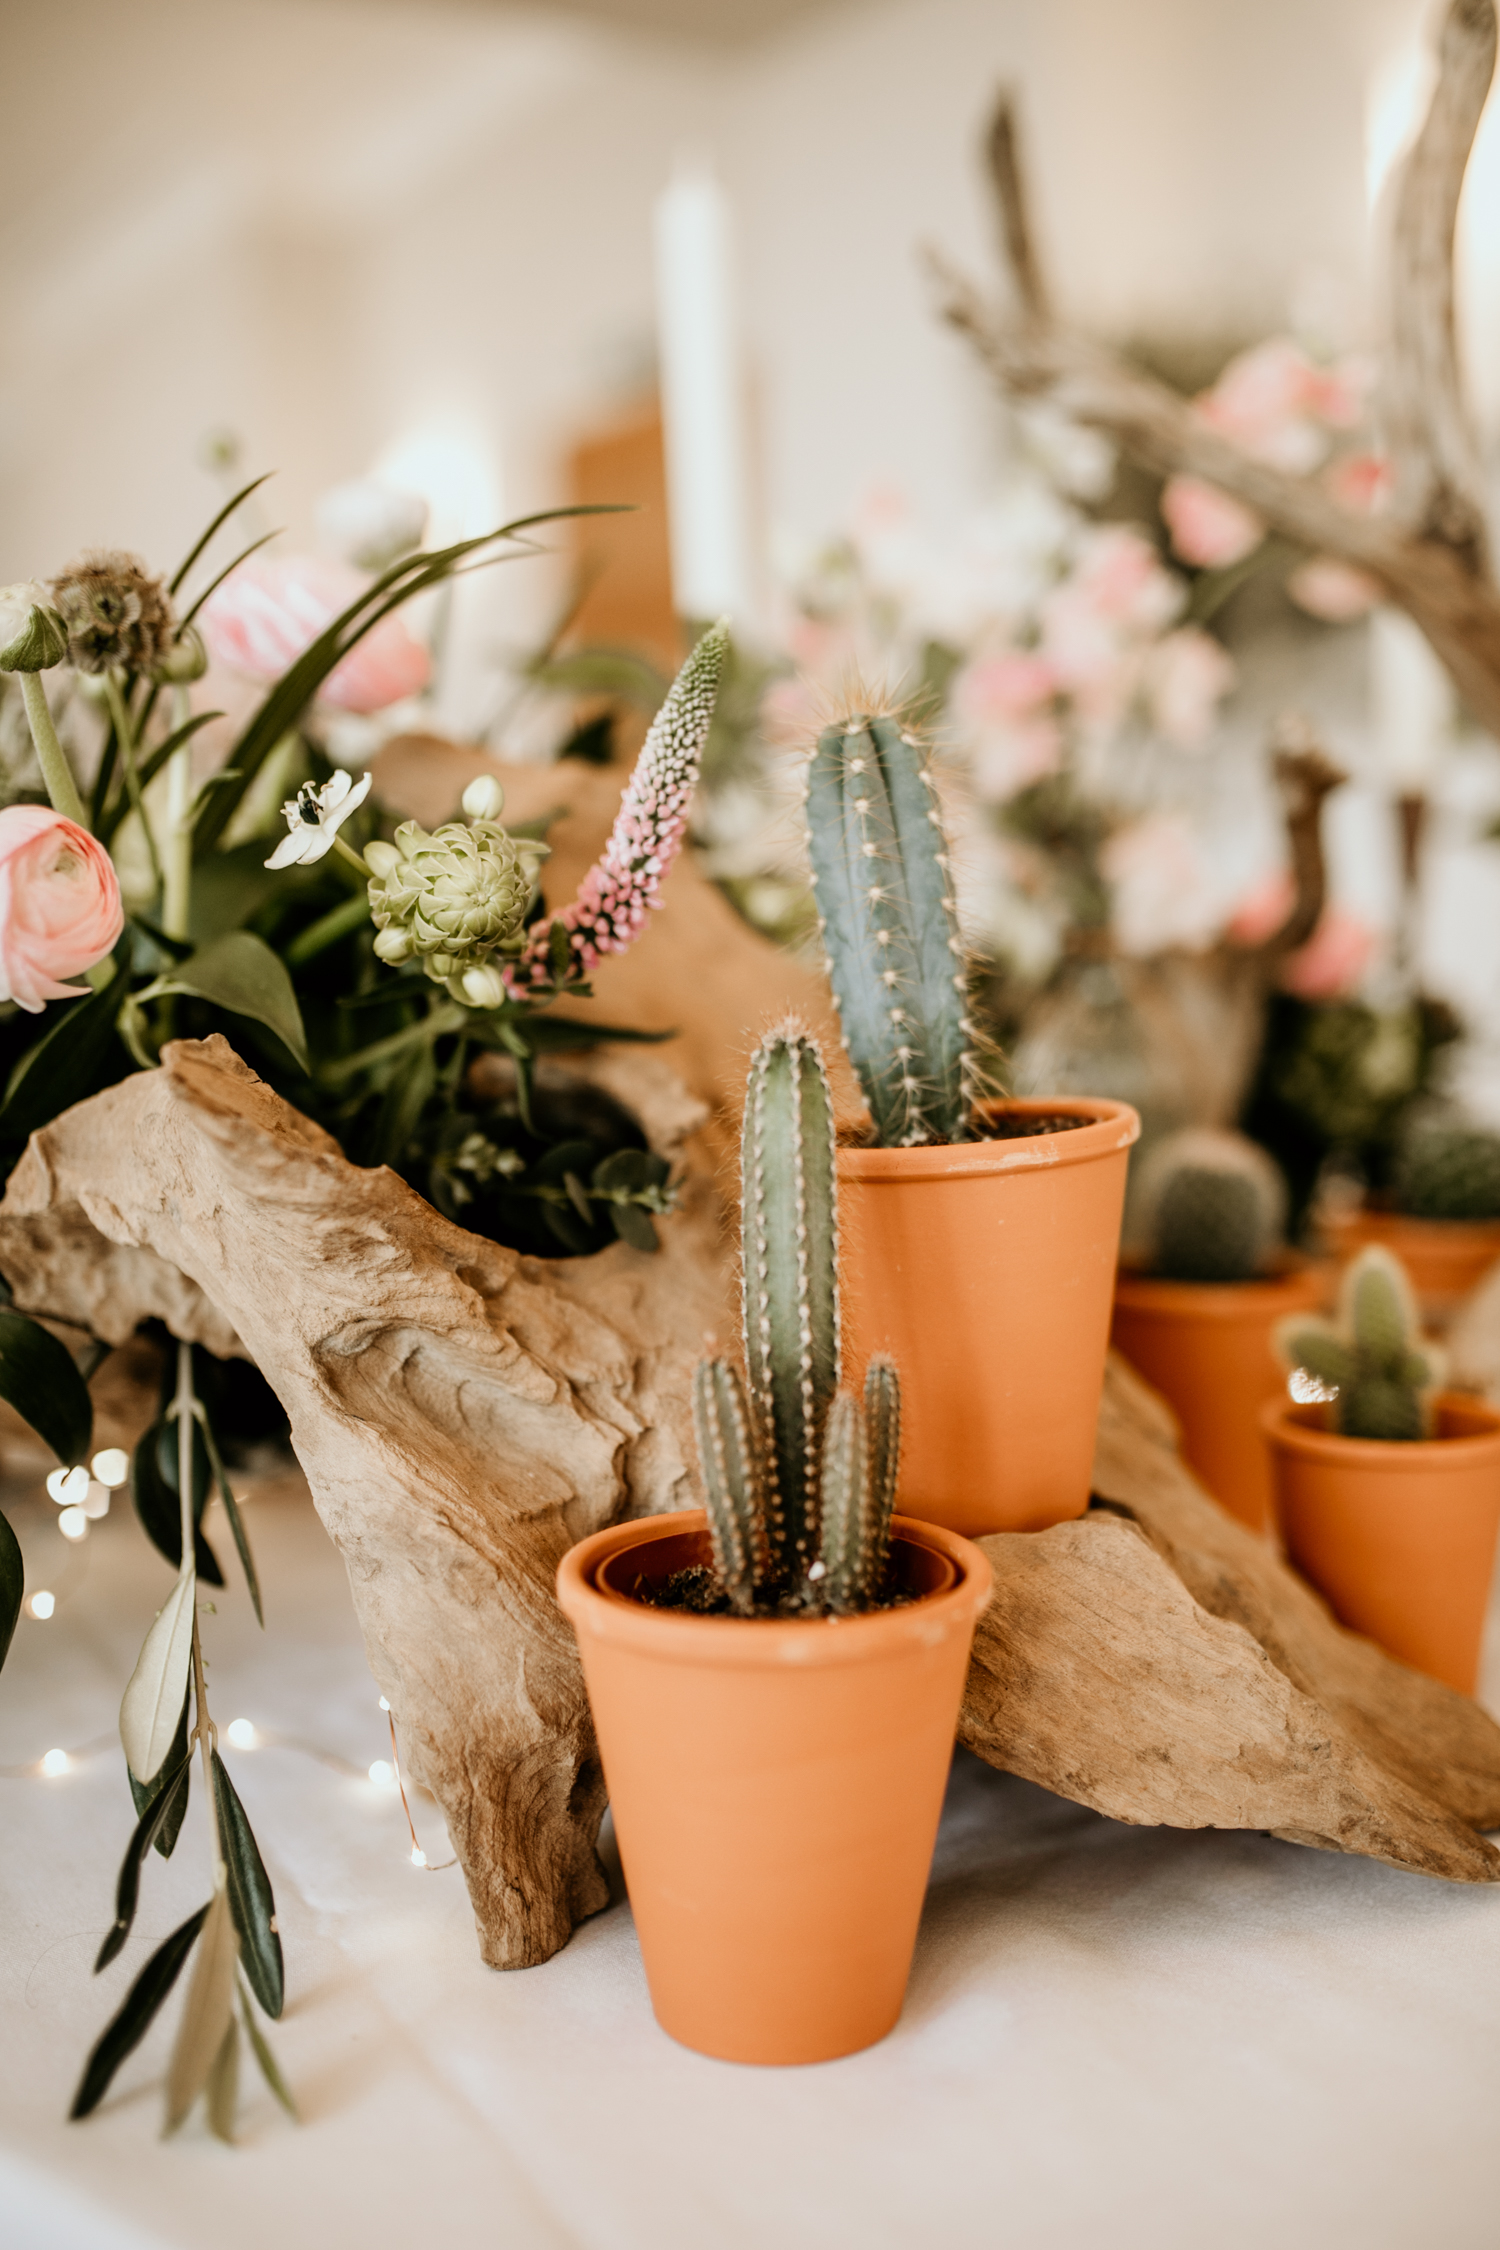 wedding decor with cactus plants and drift wood on top table